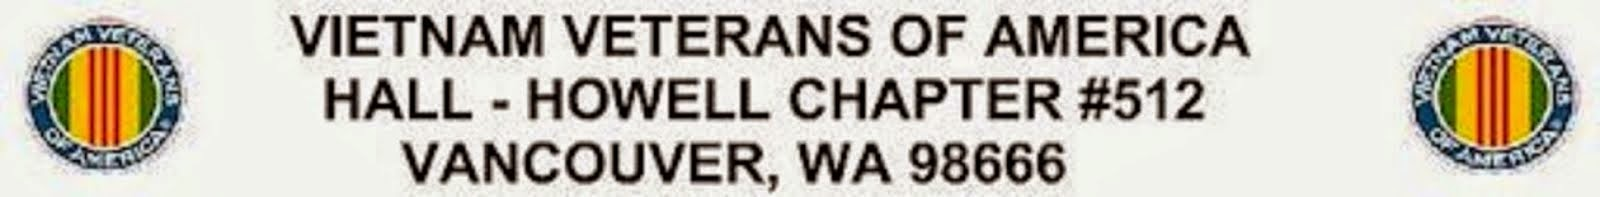 Vietnam Veterans of America Hall-Howell Chapter #512 Vancouver, WA 98666 s